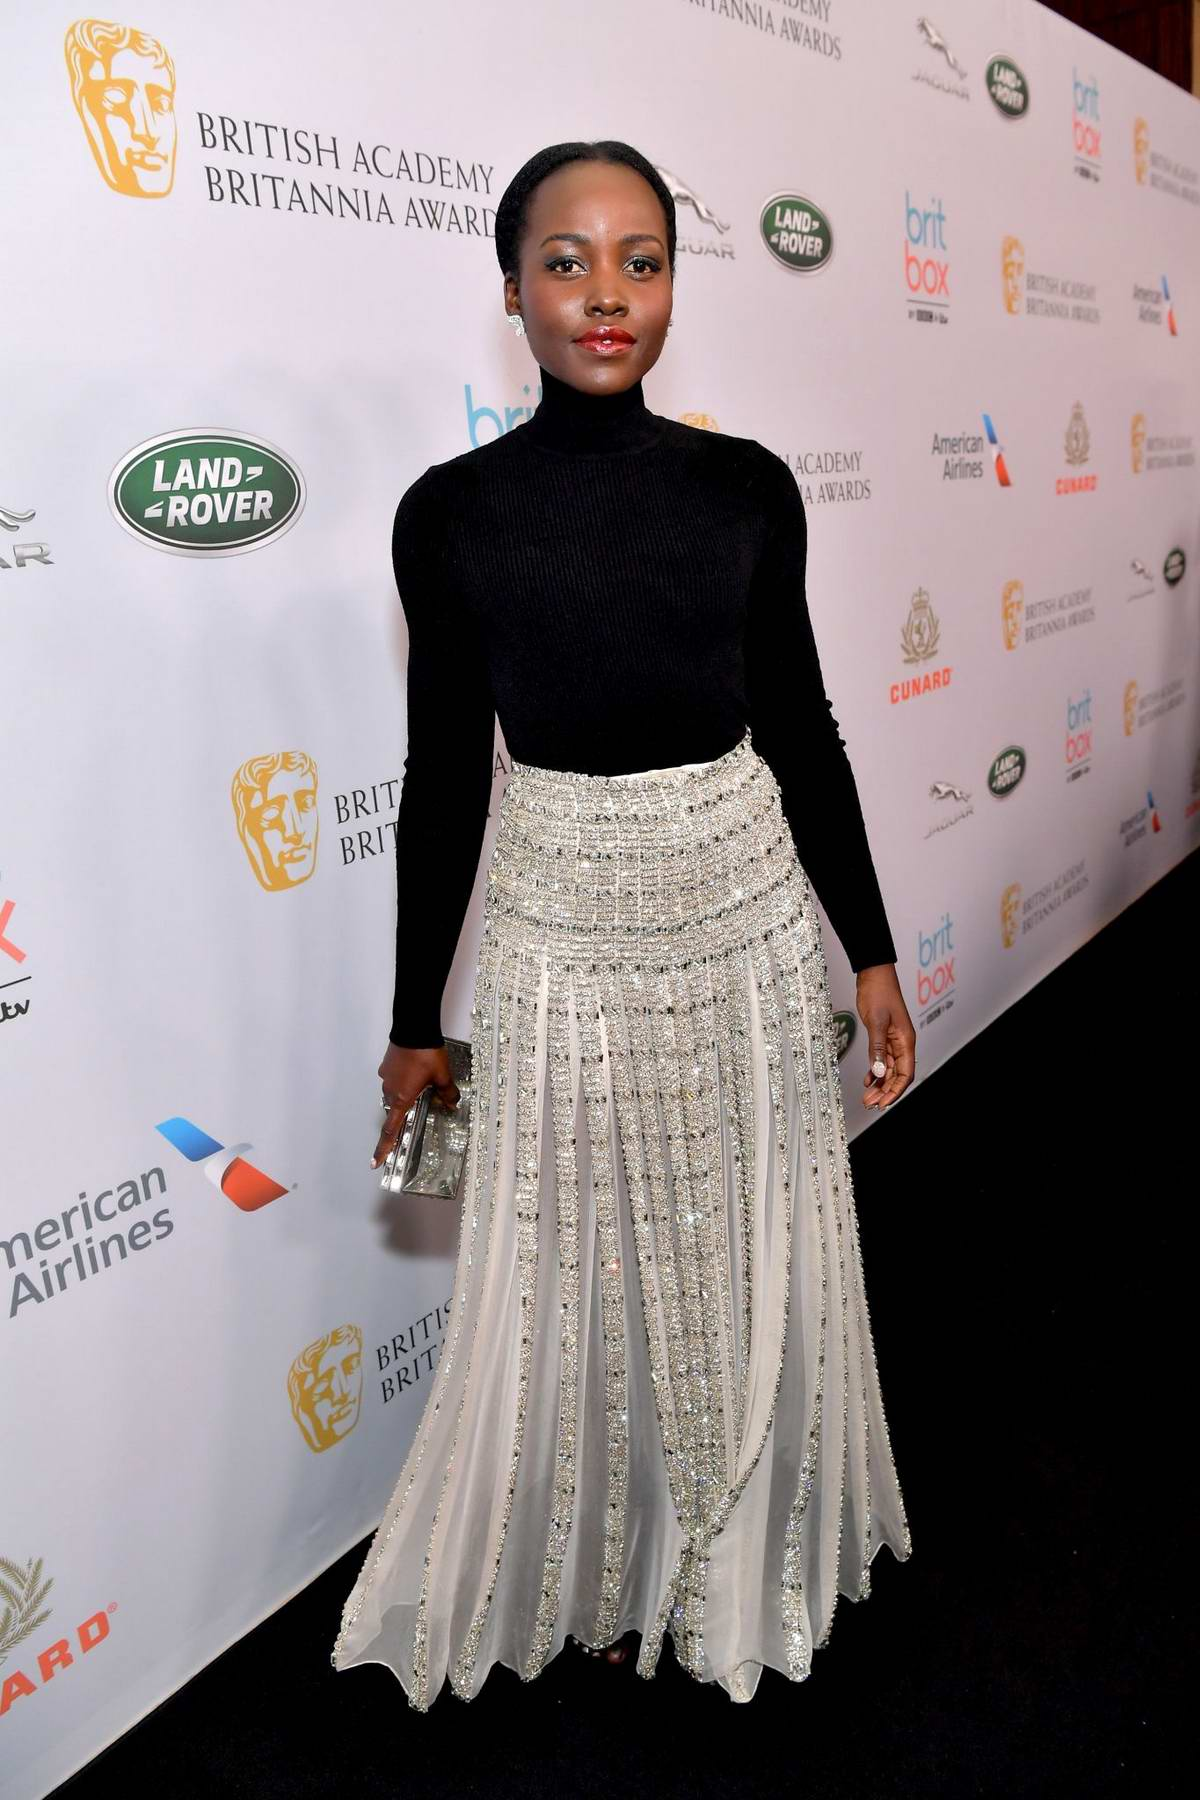 Lupita Nyong'o attends the British Academy Britannia Awards 2019 in Beverly Hills, California